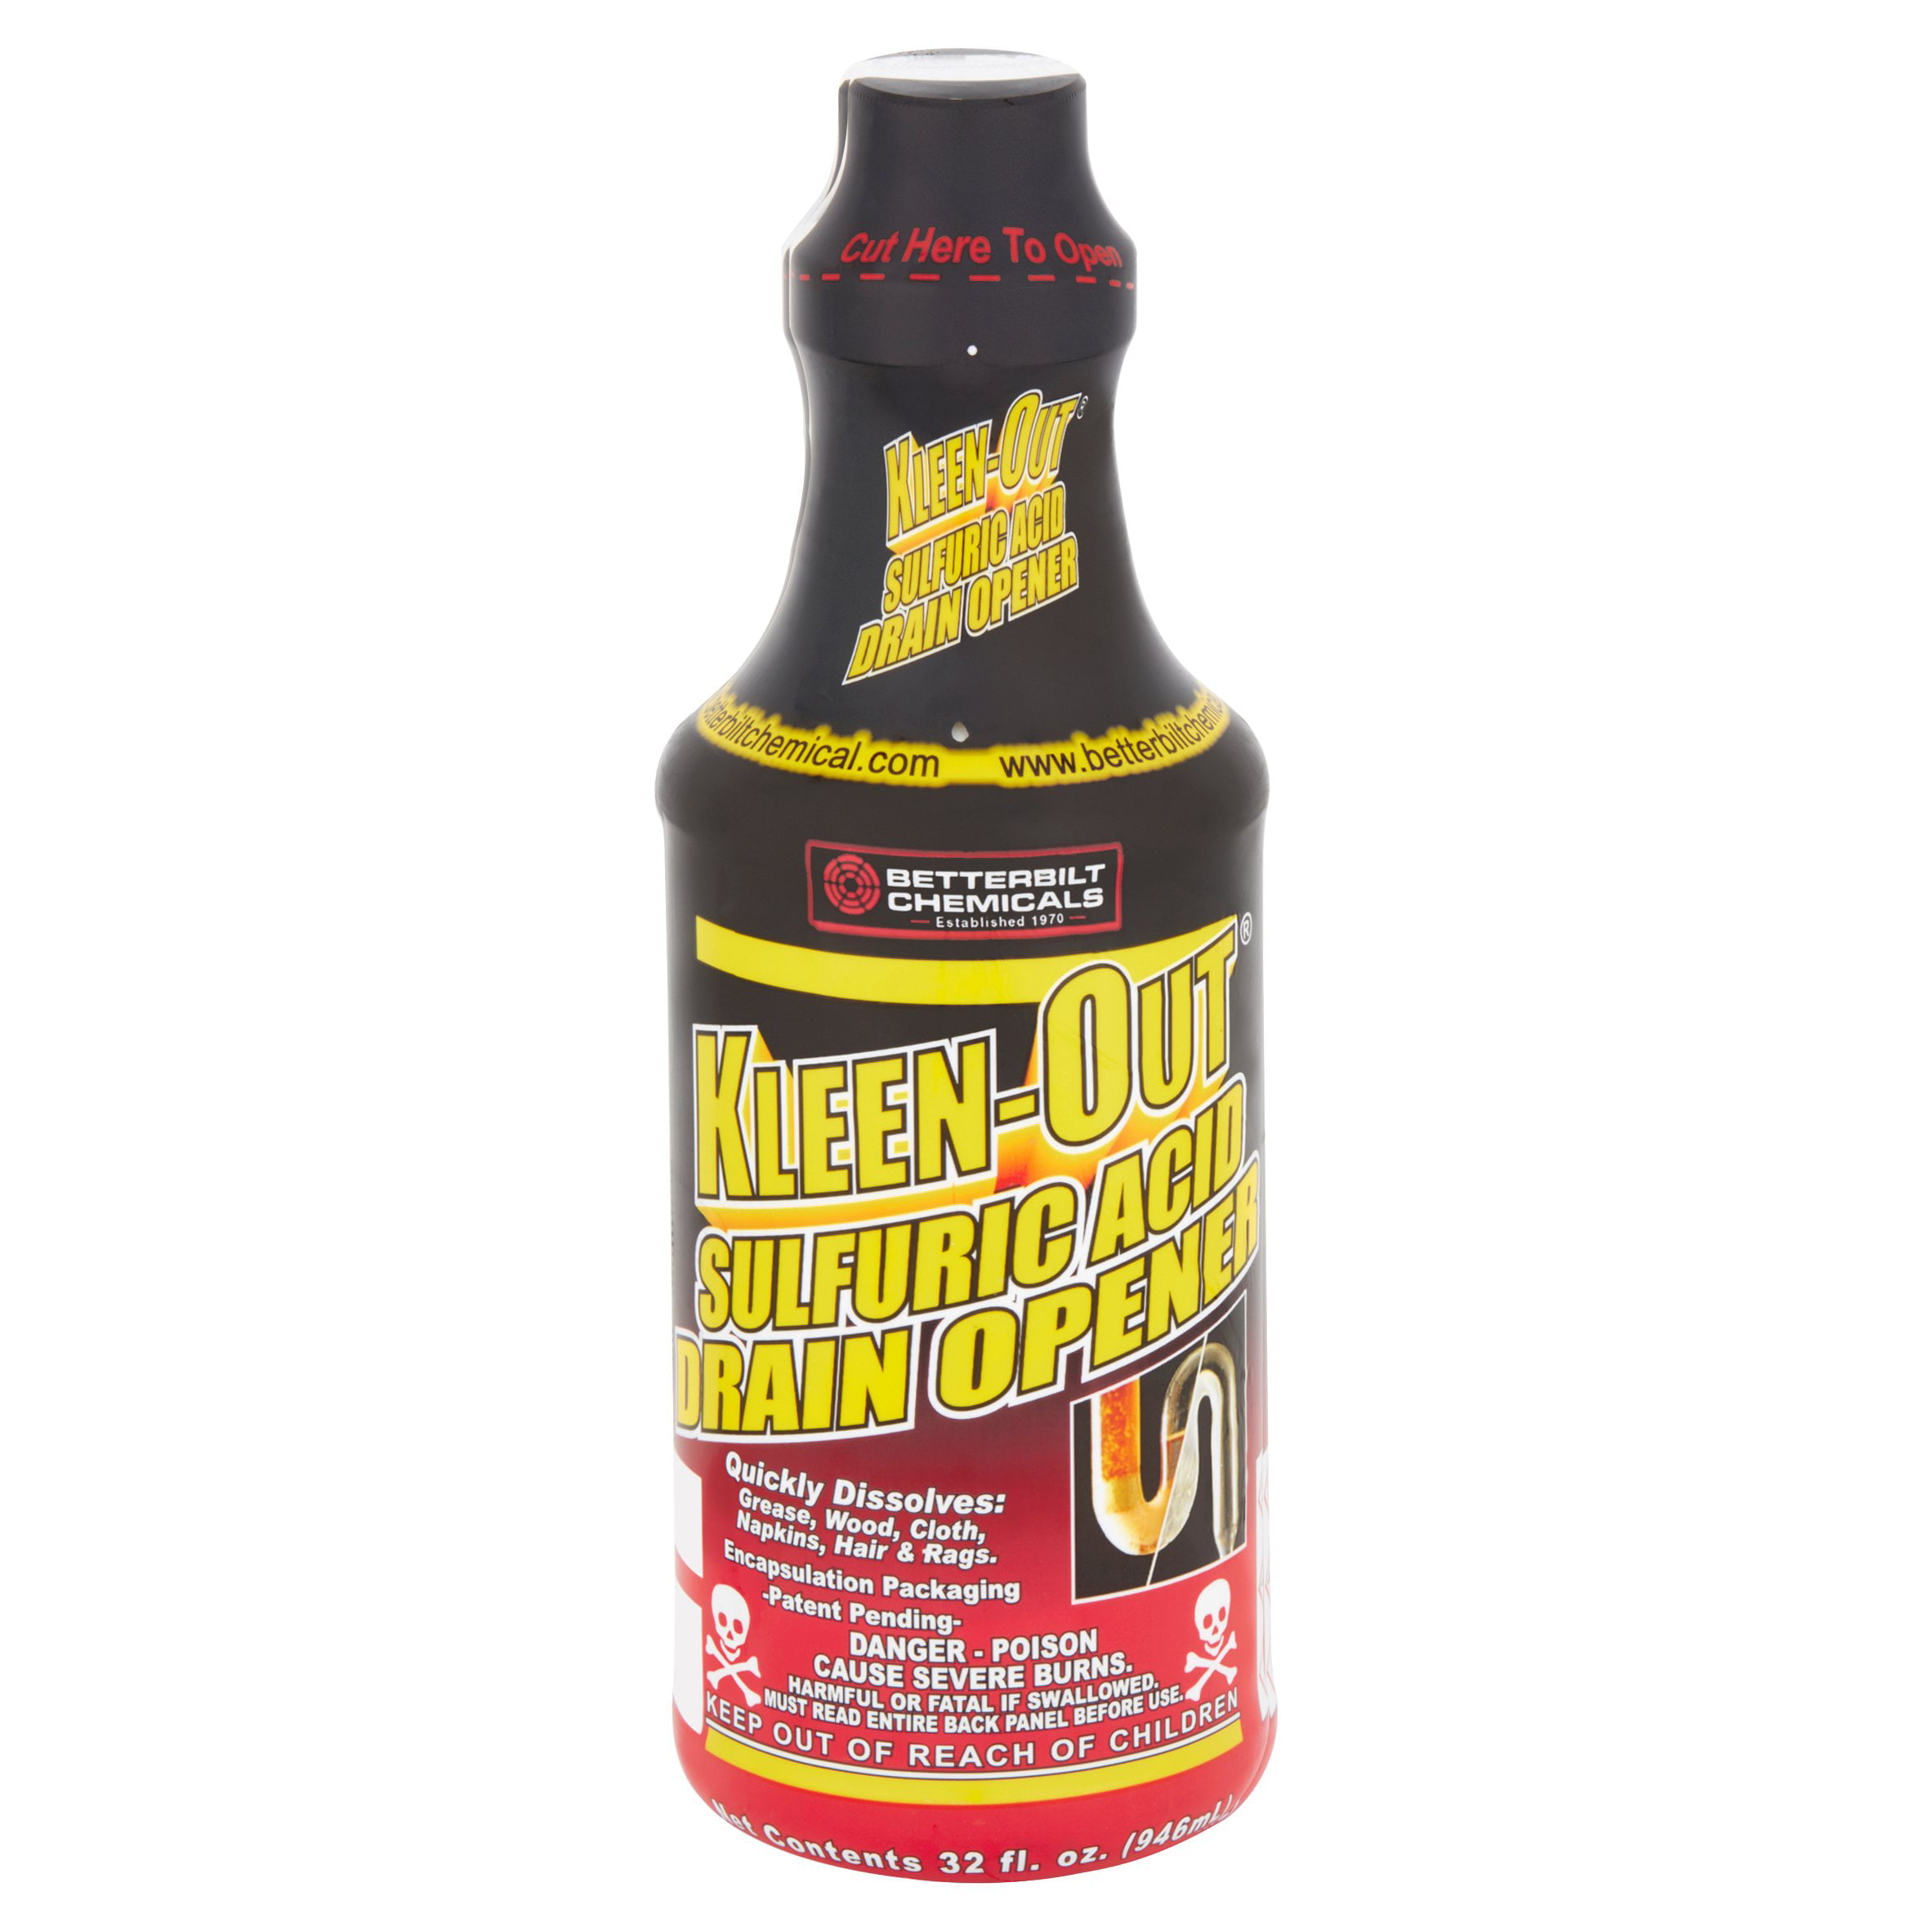 Kleen Out Sulfuric Acid Drain Opener Instructions Best